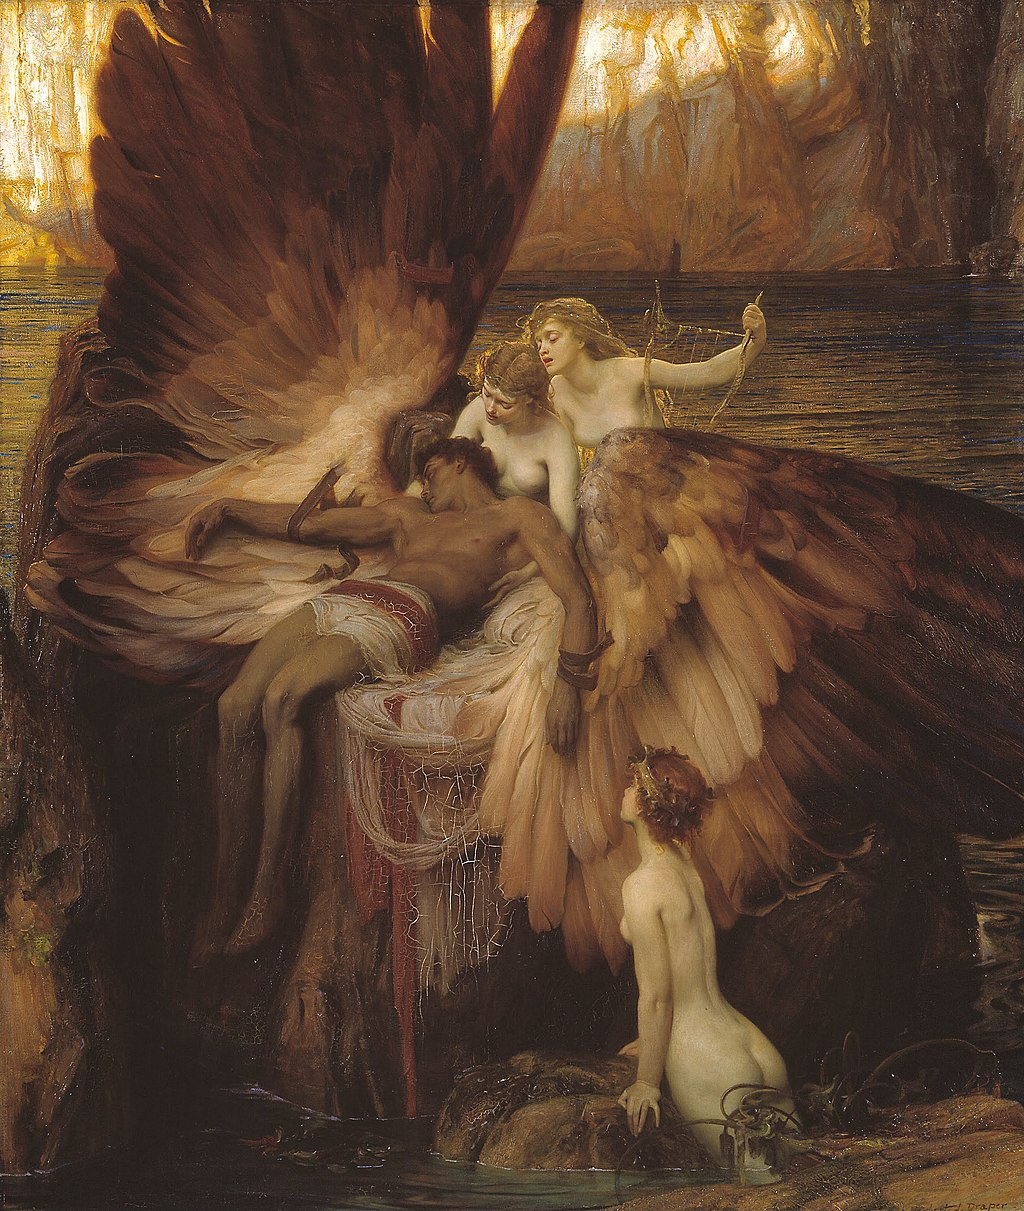 http://upload.wikimedia.org/wikipedia/commons/thumb/0/07/Herbert_Draper_-_The_Lament_for_Icarus_-_Google_Art_Project.jpg/1024px-Herbert_Draper_-_The_Lament_for_Icarus_-_Google_Art_Project.jpg